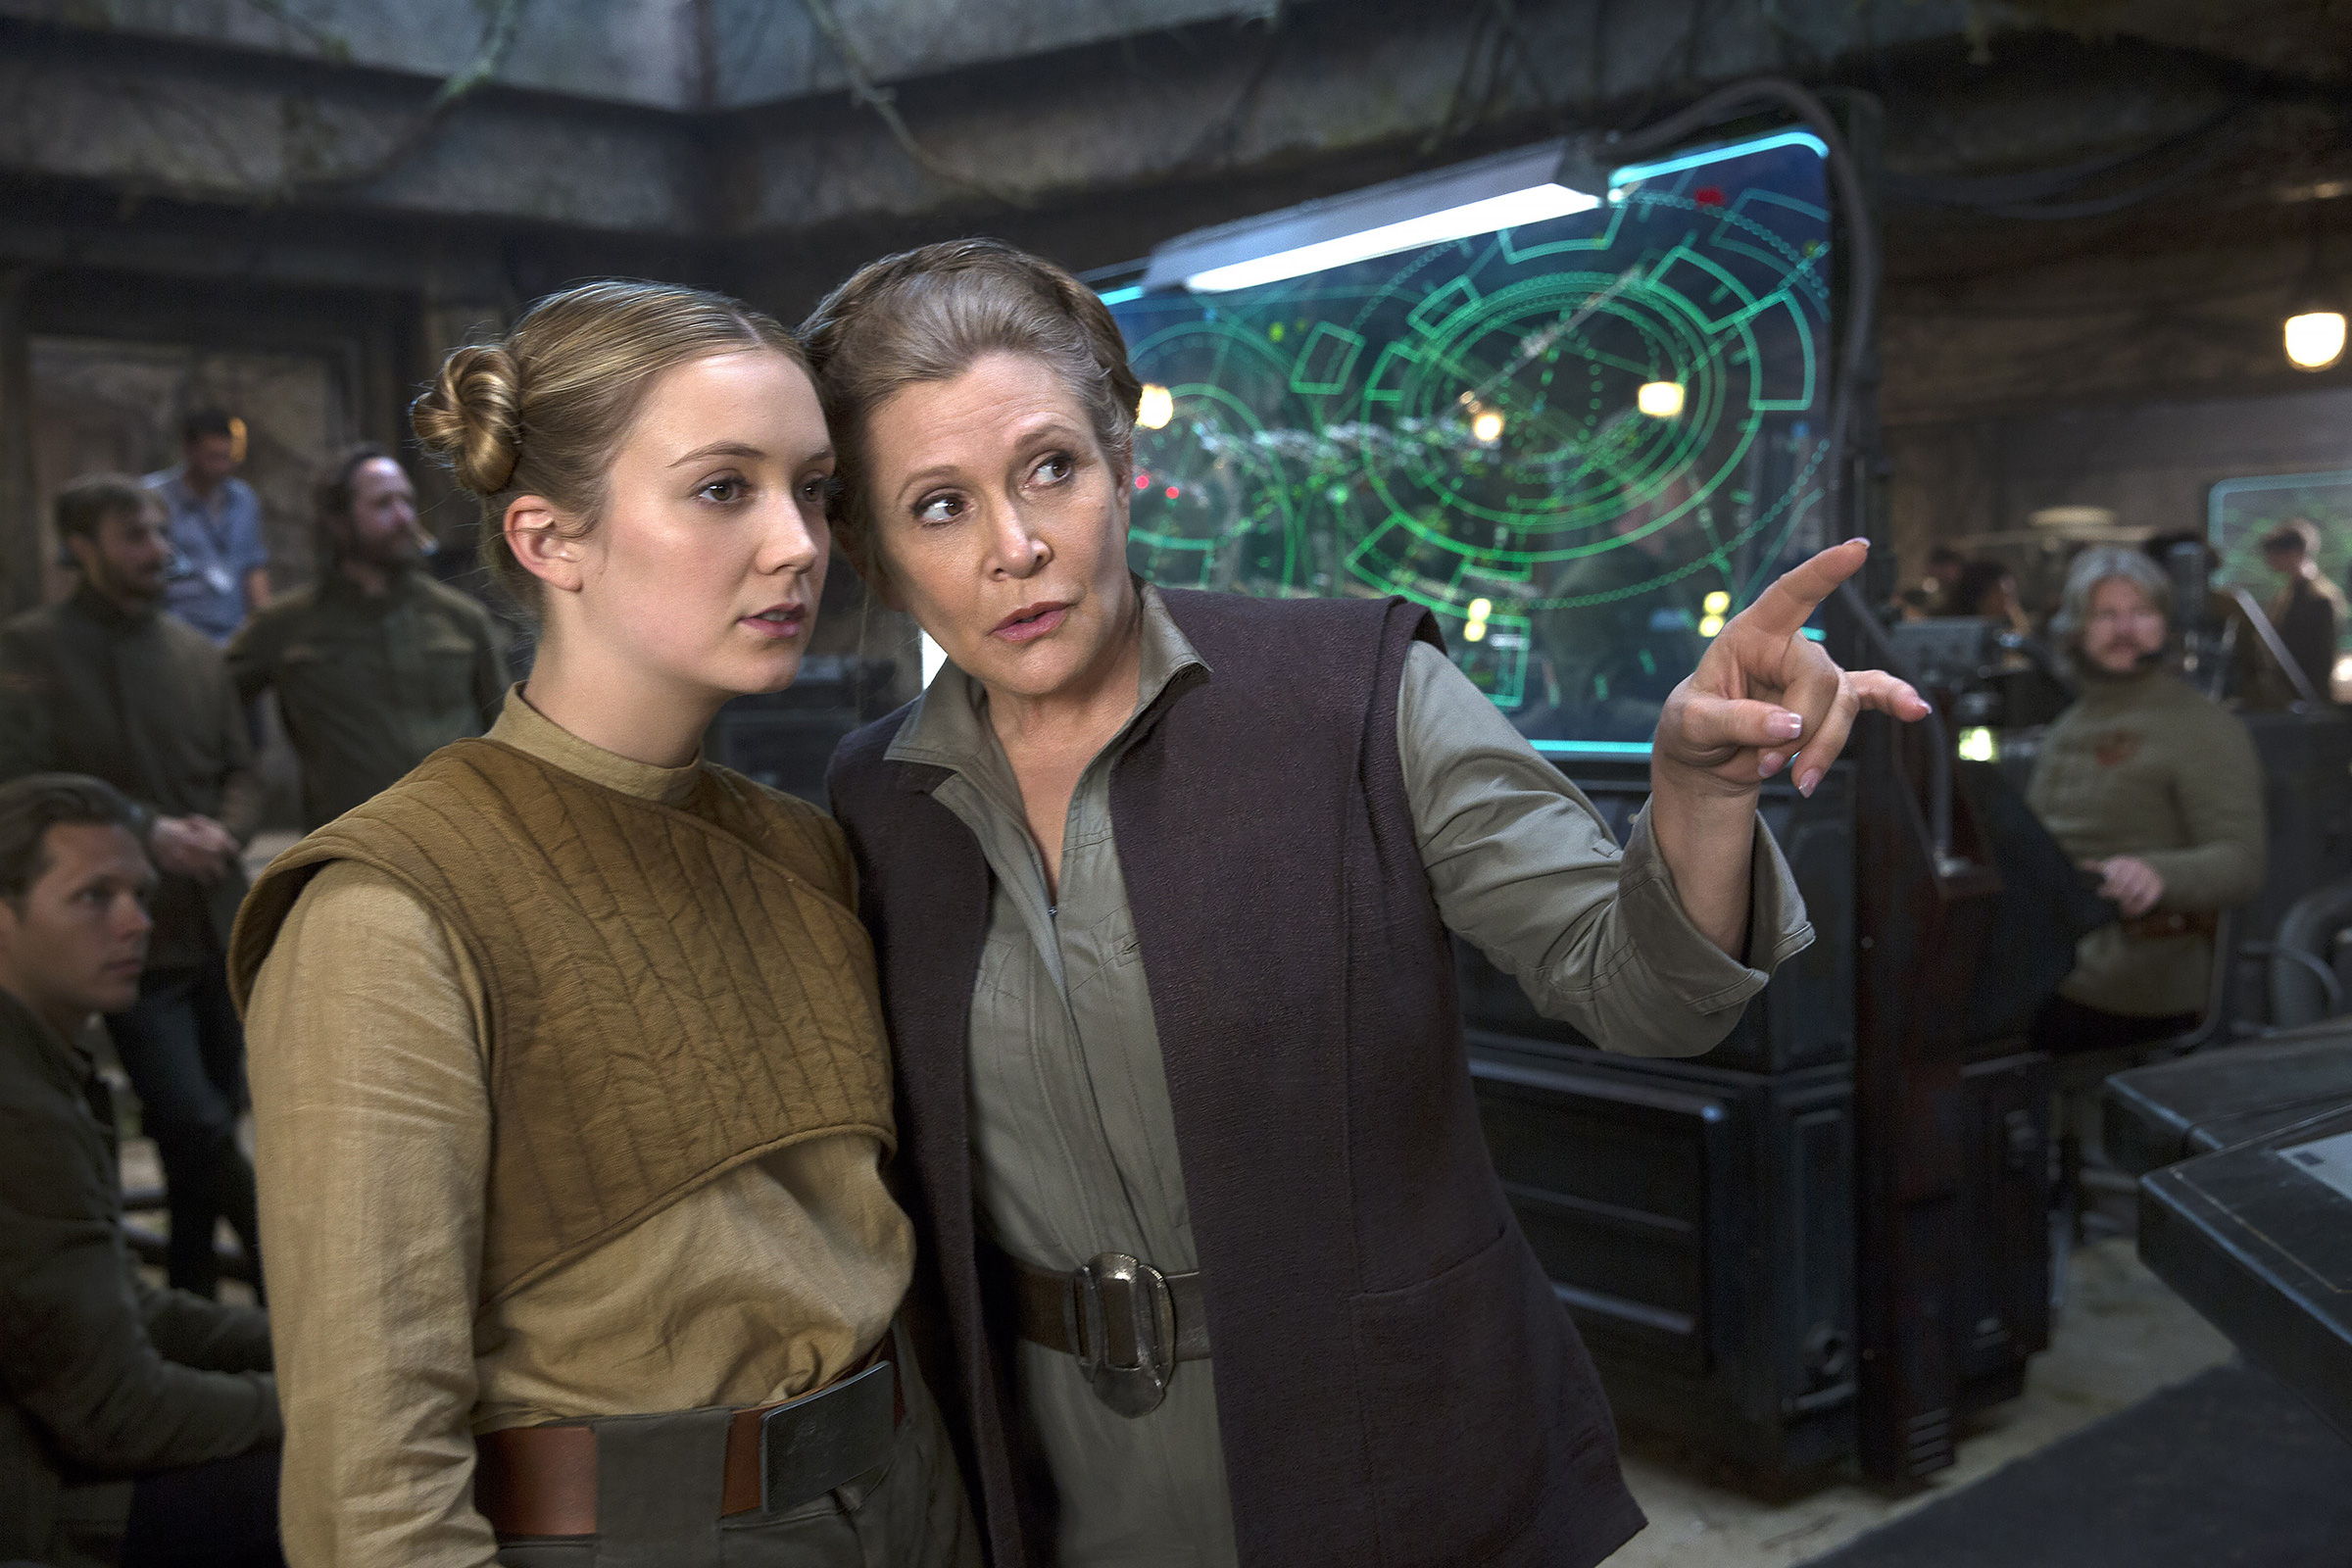 Lourd with her mother on the set of Star Wars: The Force Awakens